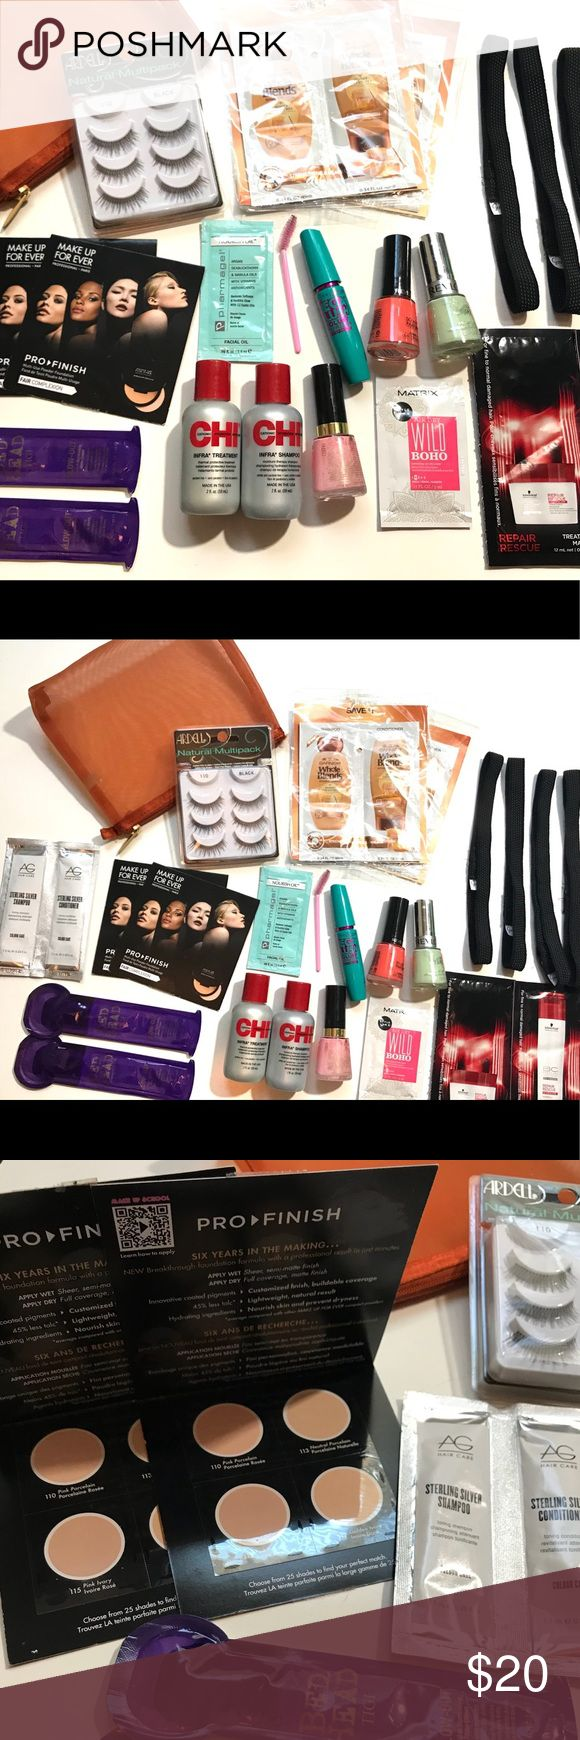 Beauty Bundle Beauty Bundle includes: carrying case in orange, 3 sets of Ardell Lashes, 2 Garnier Whole blends shampoo&conditioner packets, AG silver toner shampoo and conditioner packet, 2 Makeup Forever Pro Finish Powder, Pharmagel face oil packet, Mega Lush Volume Mascara, 3 Revlon Nail Polishes, 2 Bed Head Shine Creams, CHI shampoo and Treatment bottles, 4 Goody headbands, Matrix air dry cream packet, and Schwarzkopf shampoo and repair rescue packets. All Brand New!!! Revlon Makeup False…